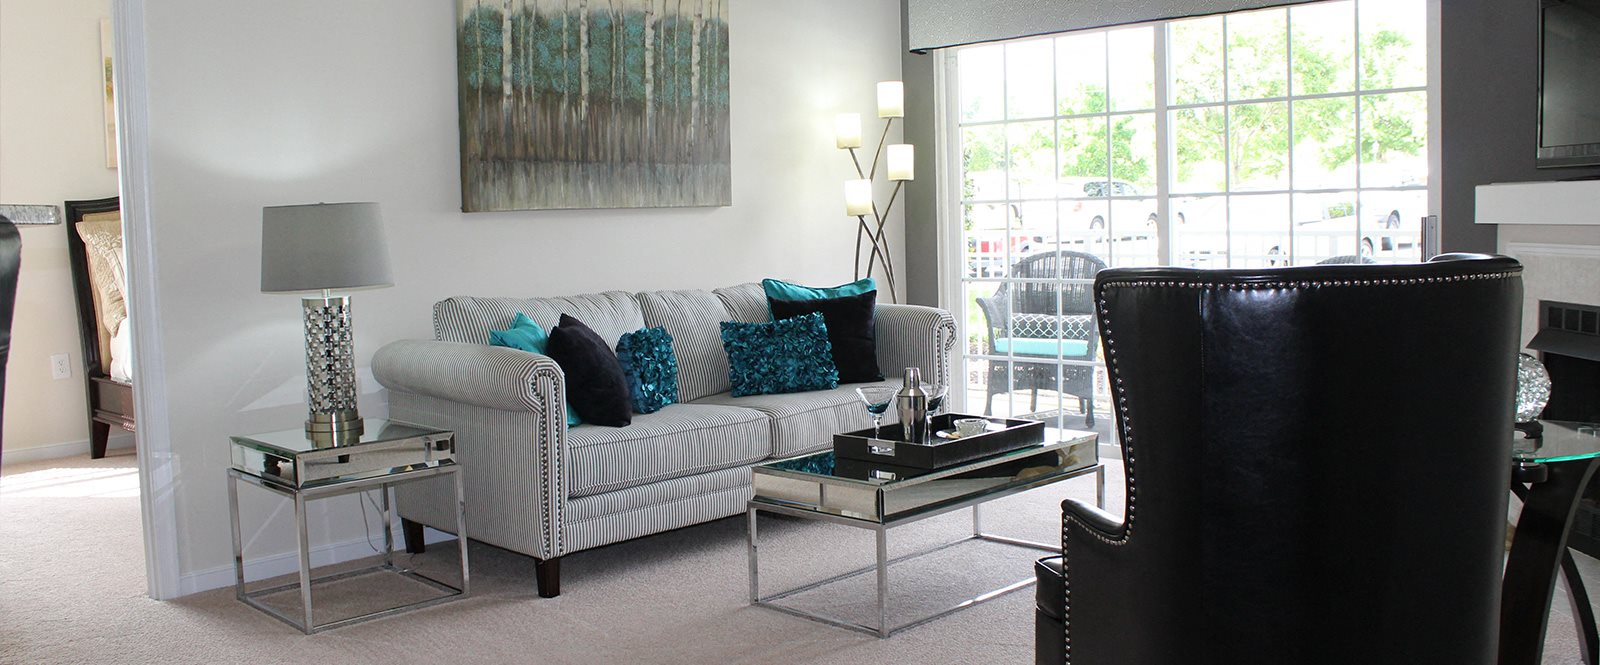 Sophisticated Apartment Living at Abberly Twin Hickory Apartment Homes, Glen Allen, VA